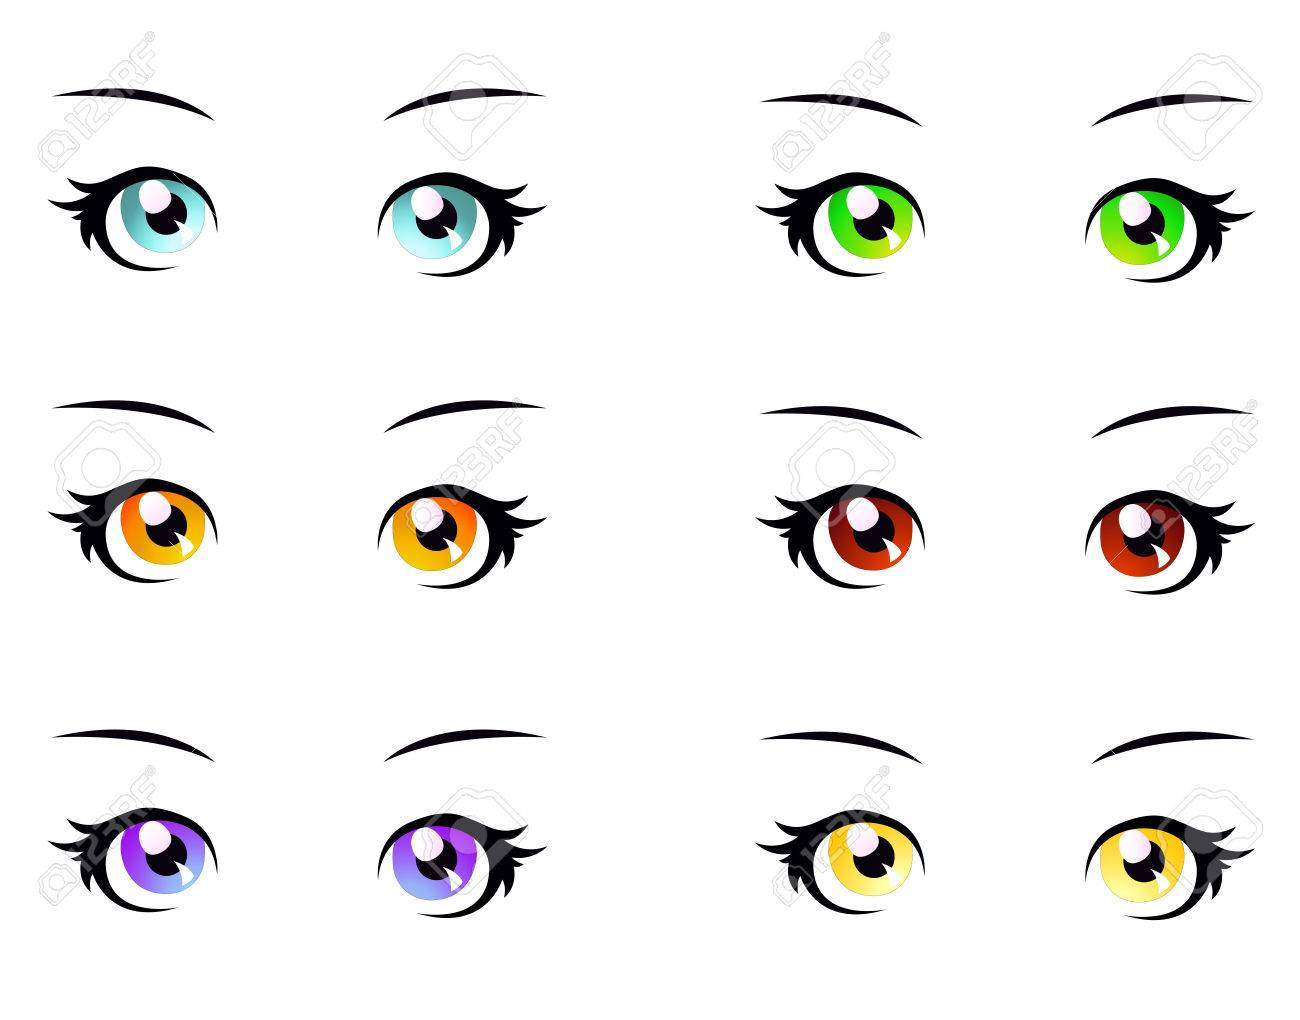 A set of eyes in manga style, isolated on white, eps10 vector format - 55967498